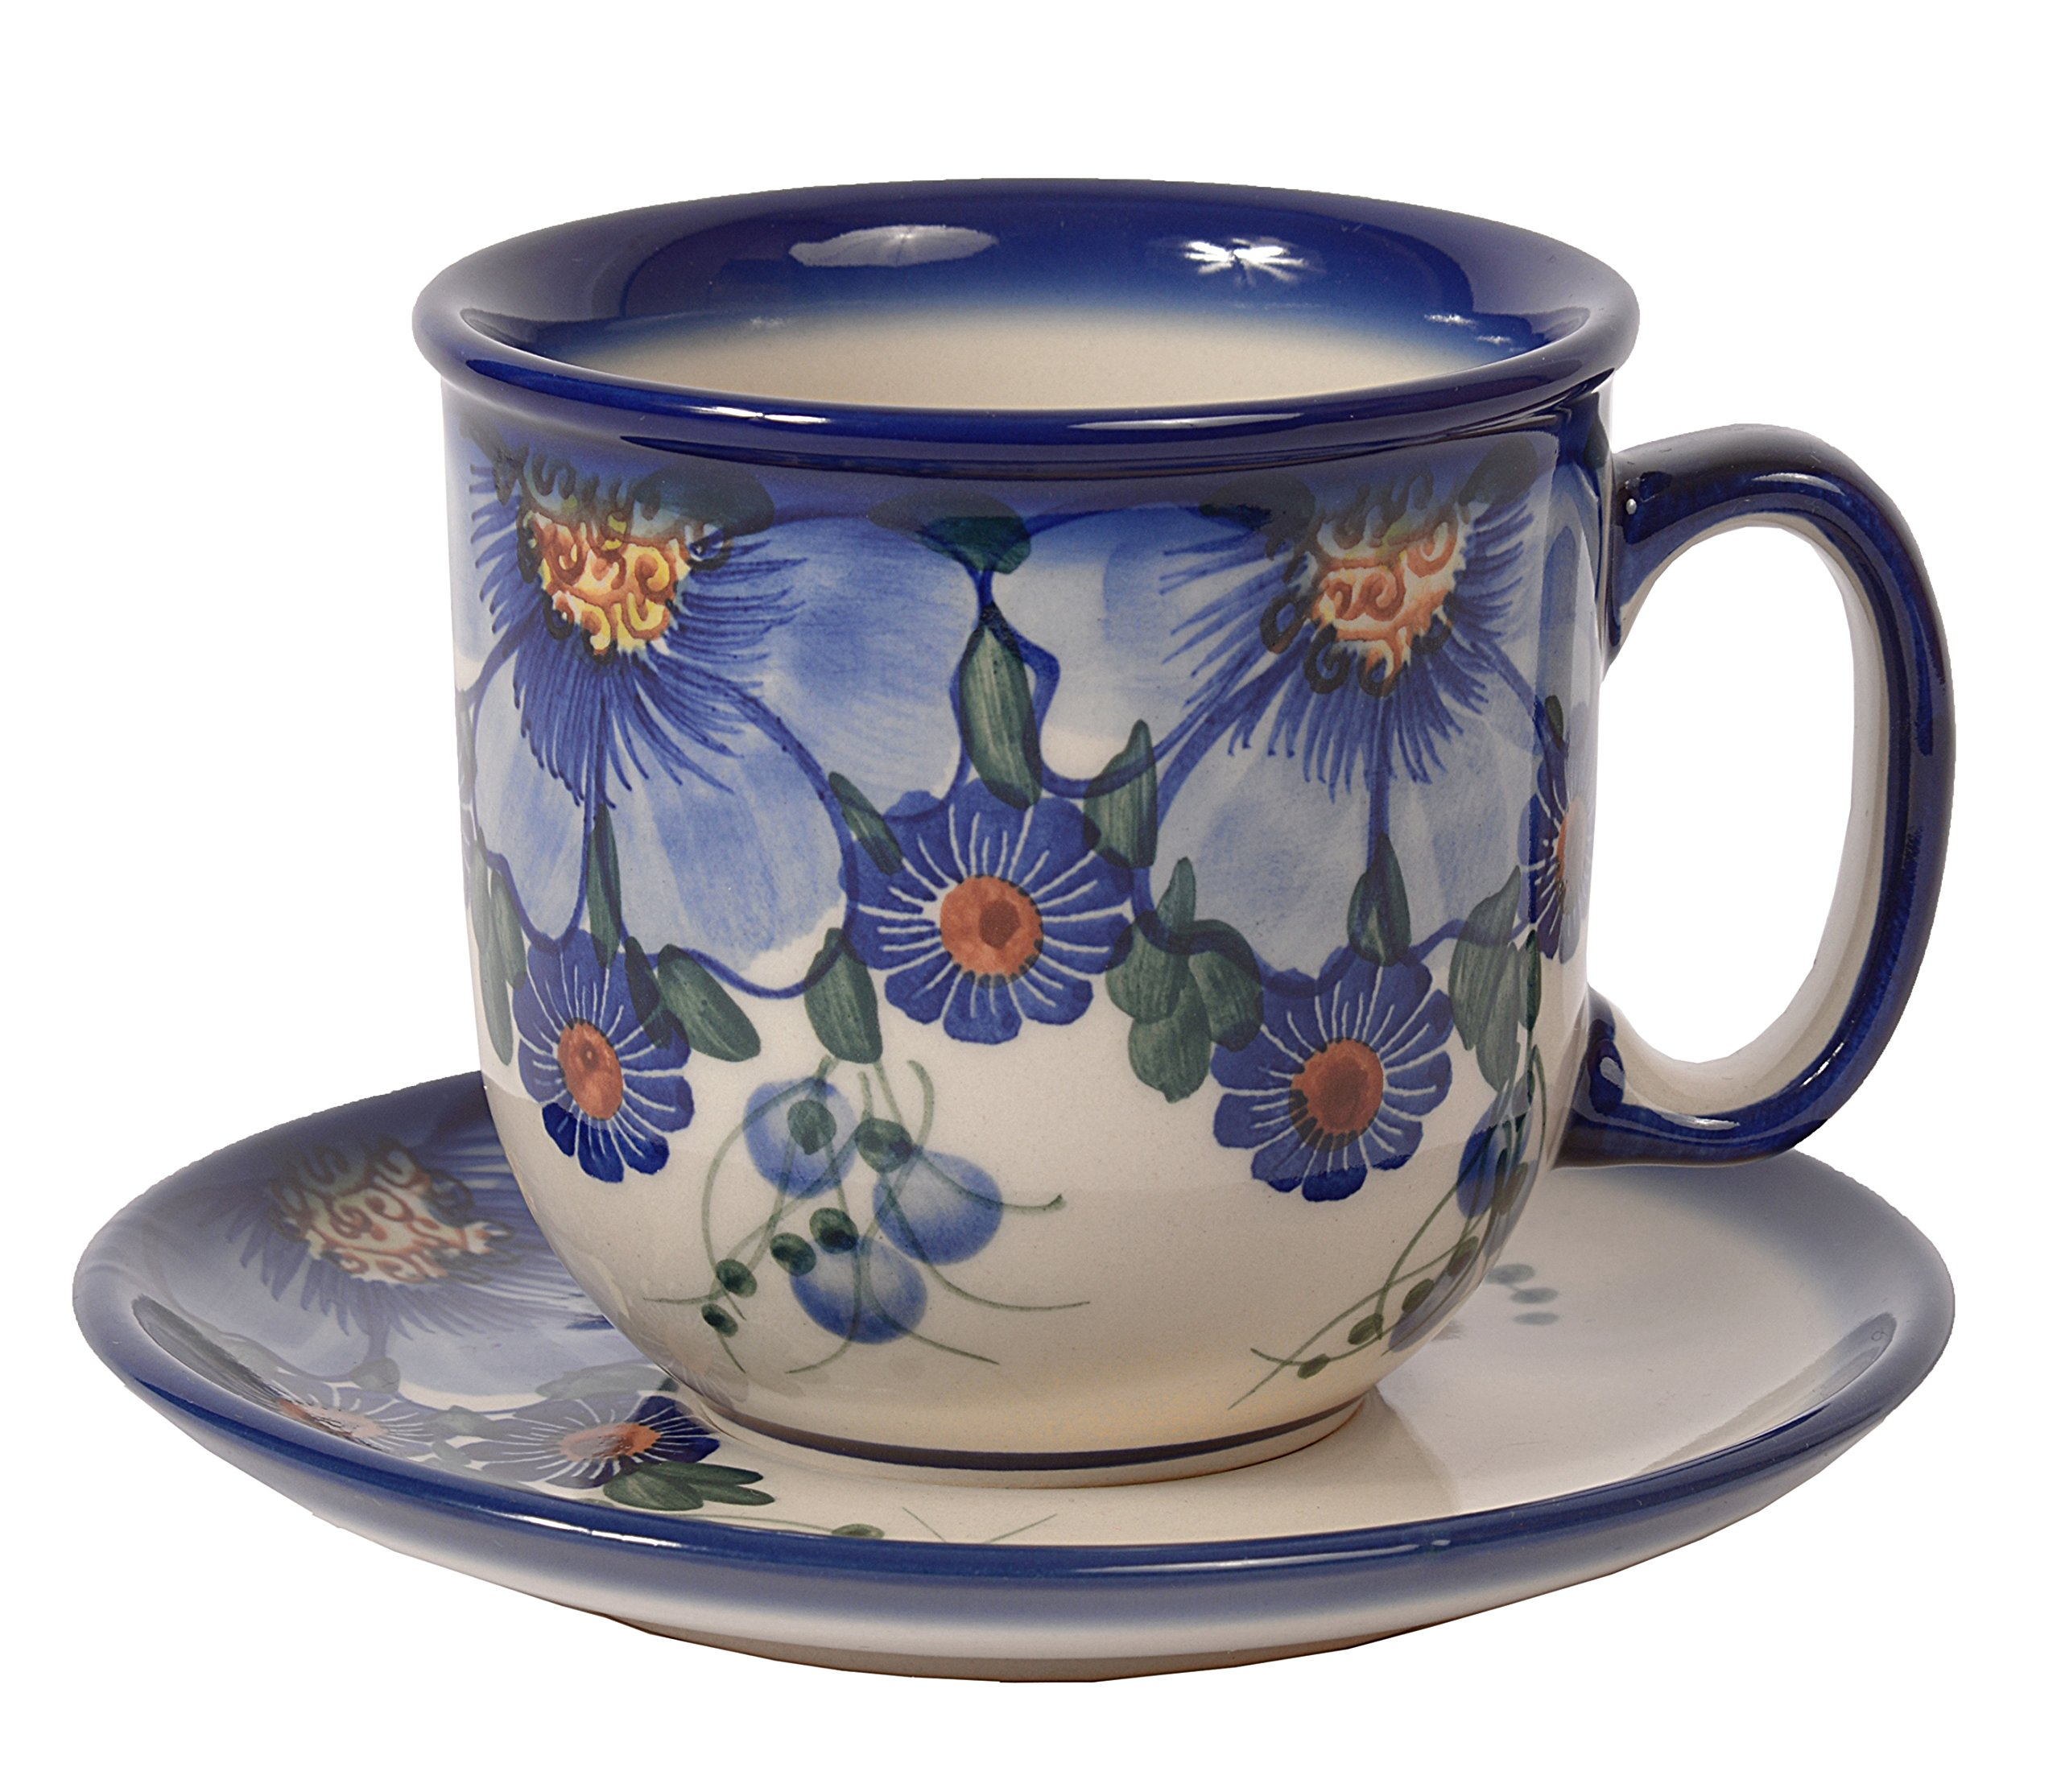 Traditional Polish Pottery, Handcrafted Ceramic Coffee Cup and Saucer 275ml, Boleslawiec Style Pattern, F.201.Passion